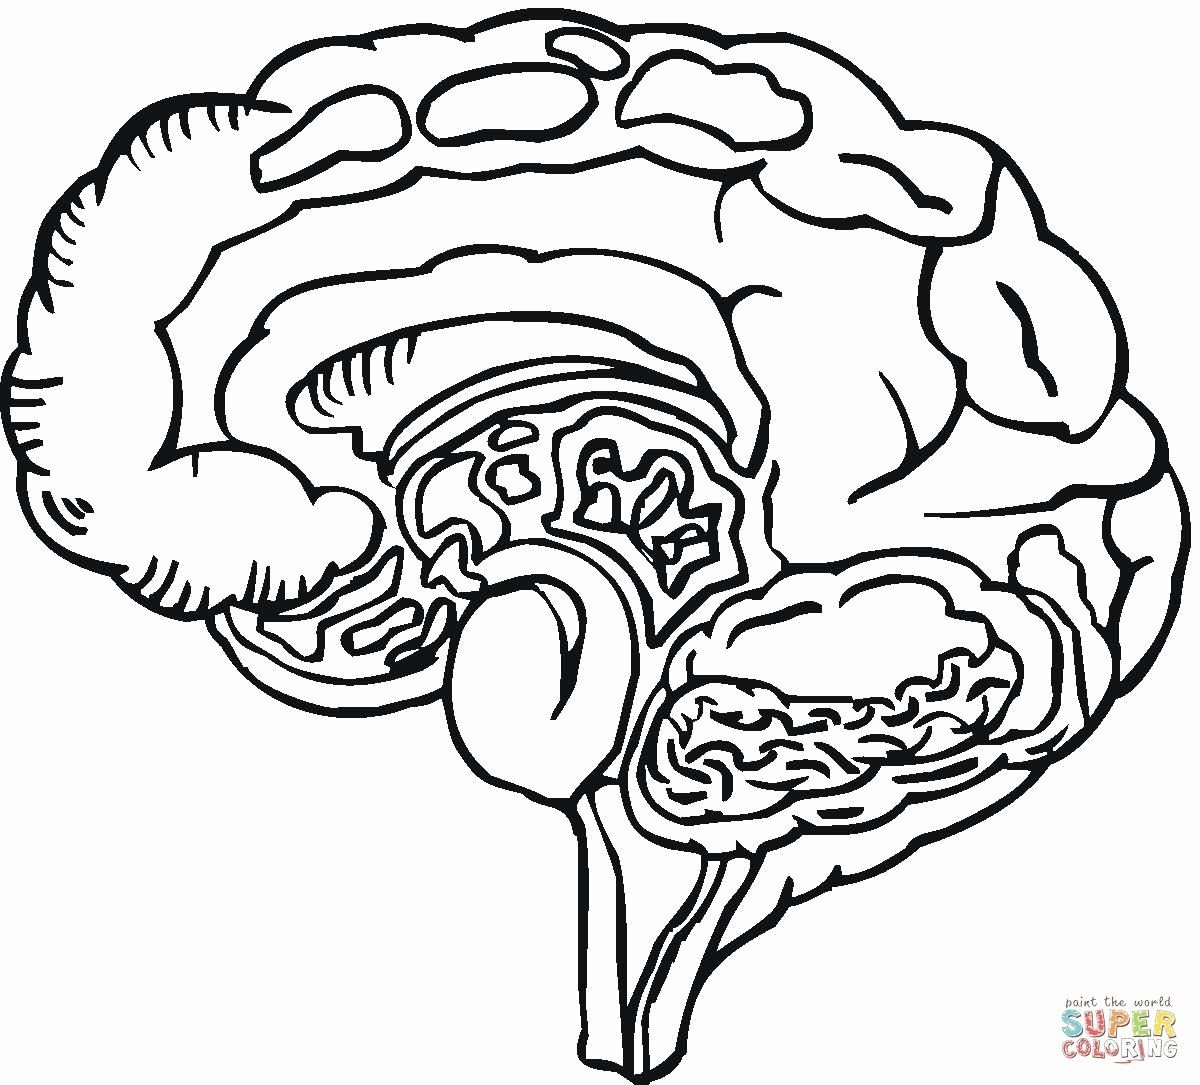 Human Brain Coloring Book Beautiful Human Brain Coloring Page Supercoloring Pasaulio Pazinimas Super Coloring Pages Animal Coloring Books Coloring Books